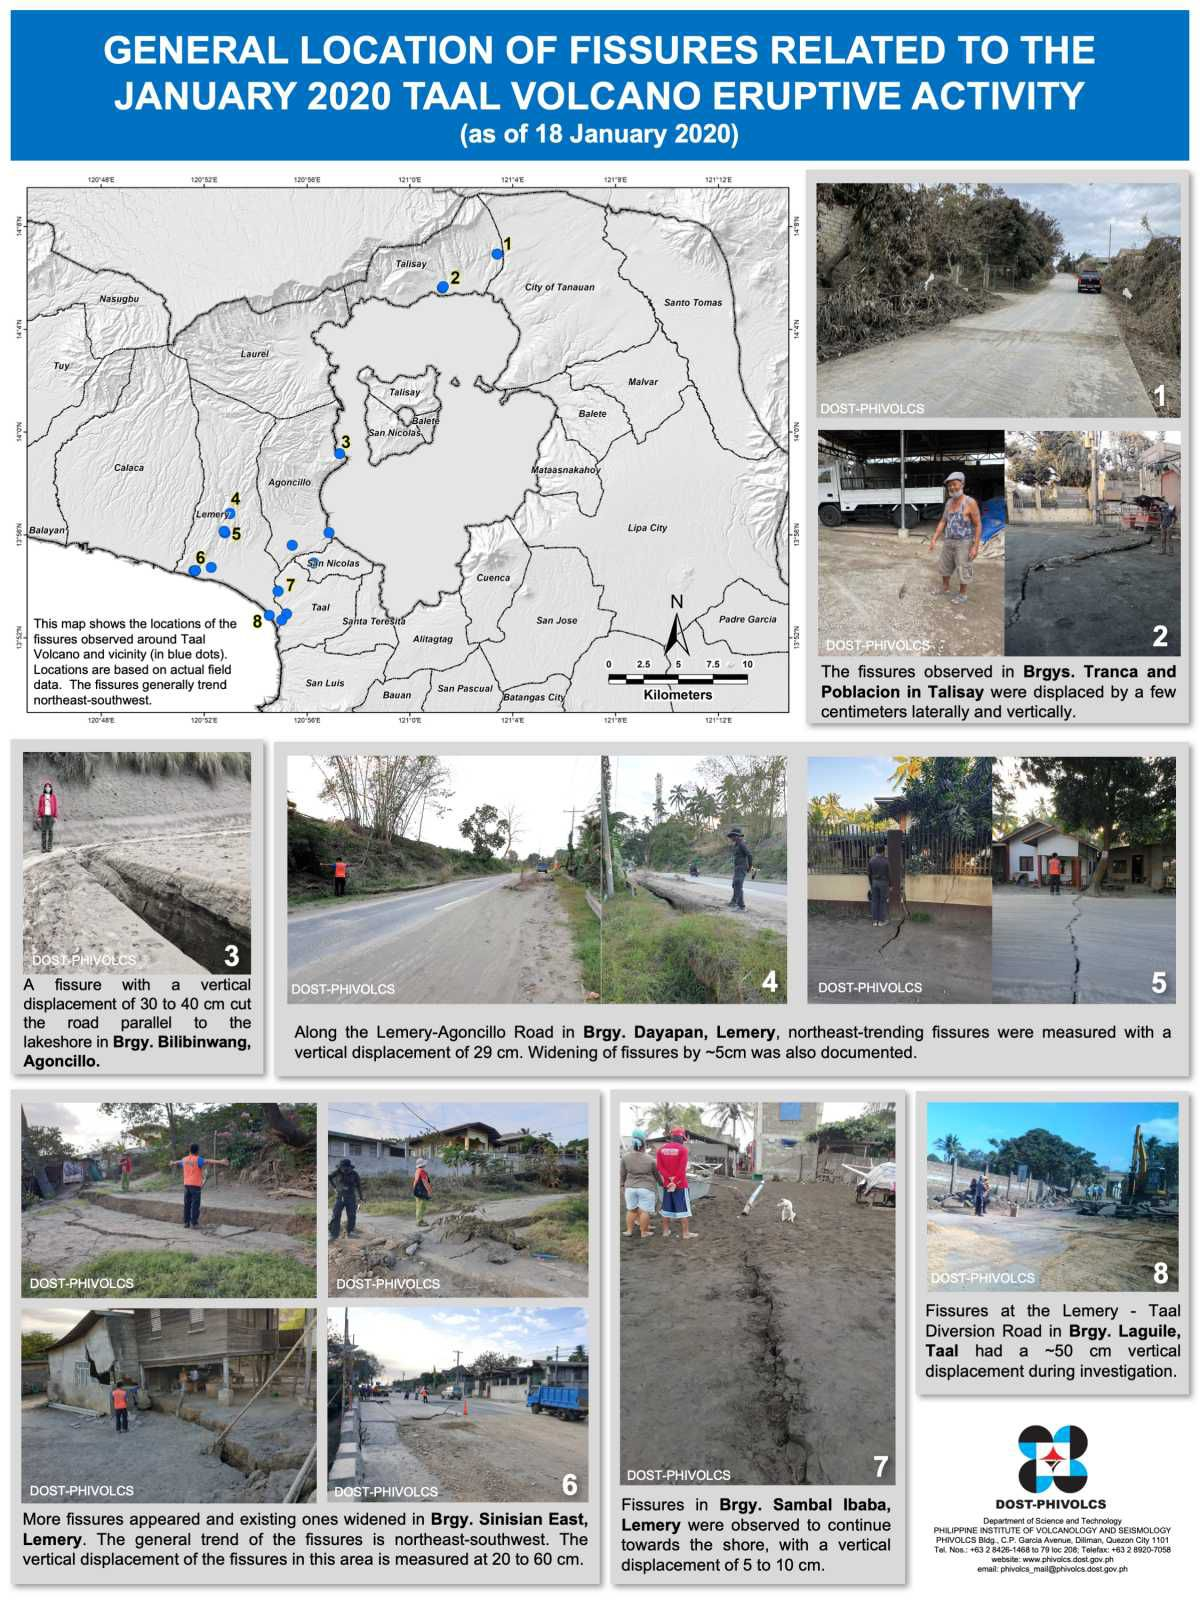 Taal - distribution of cracks on 18.01.2020 - Doc. Phivolcs - one click to enlarge